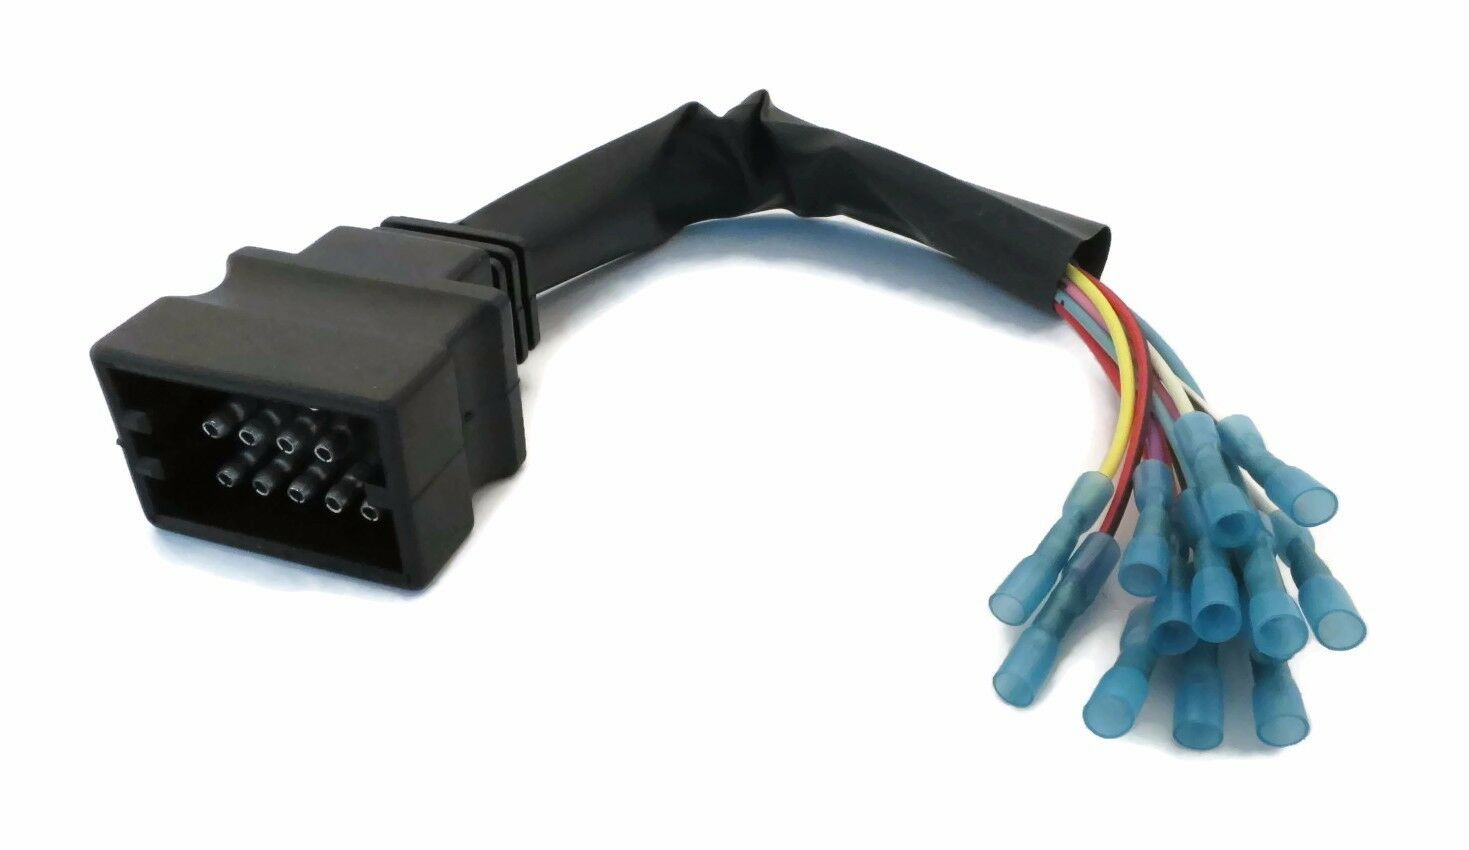 snow plow wiring harness repair kits msc04753 msc04754 for snowplow blade ebay